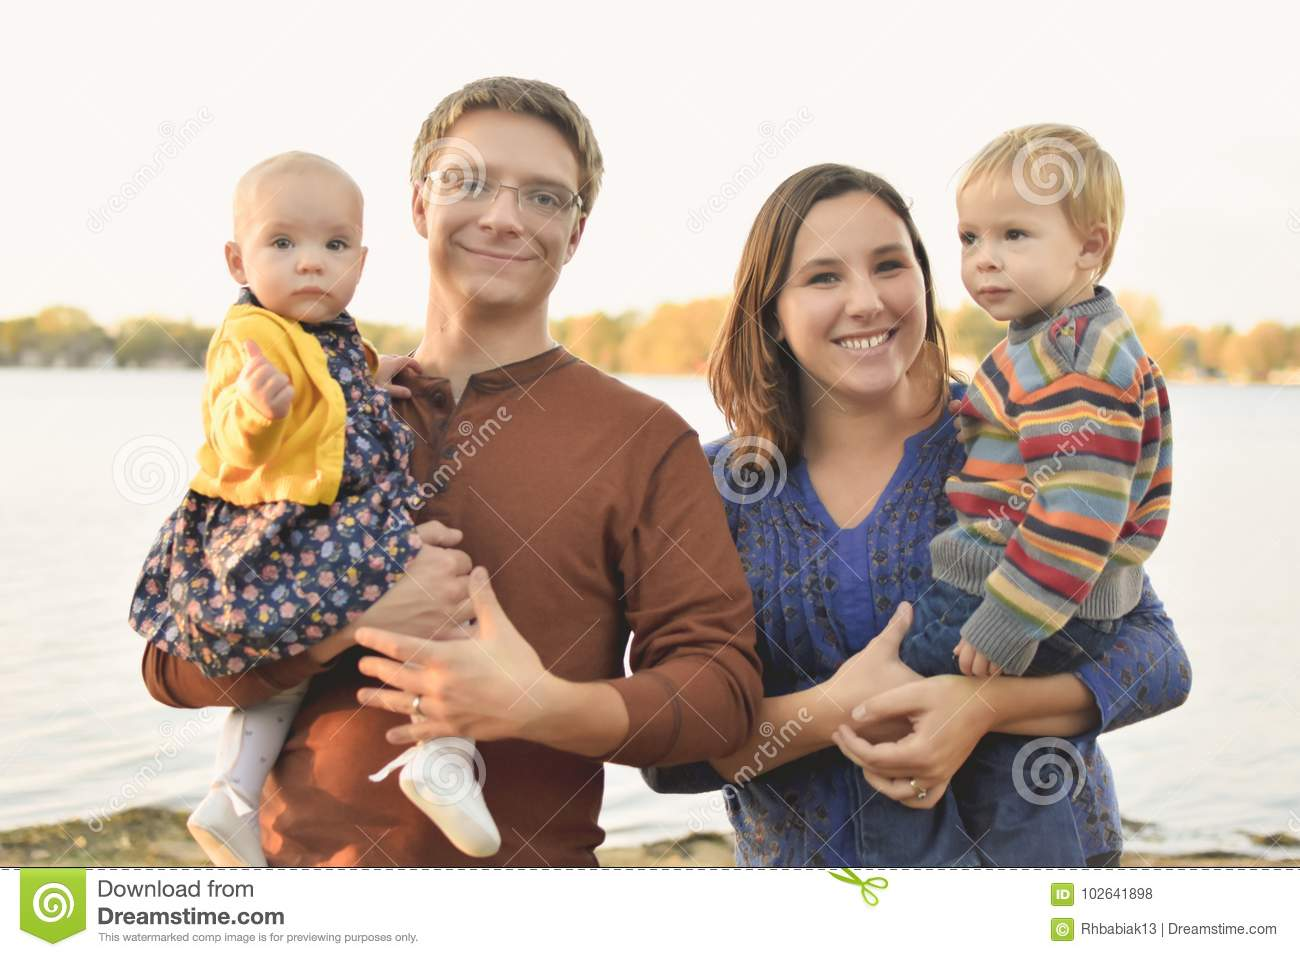 A cute family with a mom dad little boy and little baby girl together by the lake in the fall family of four american dream